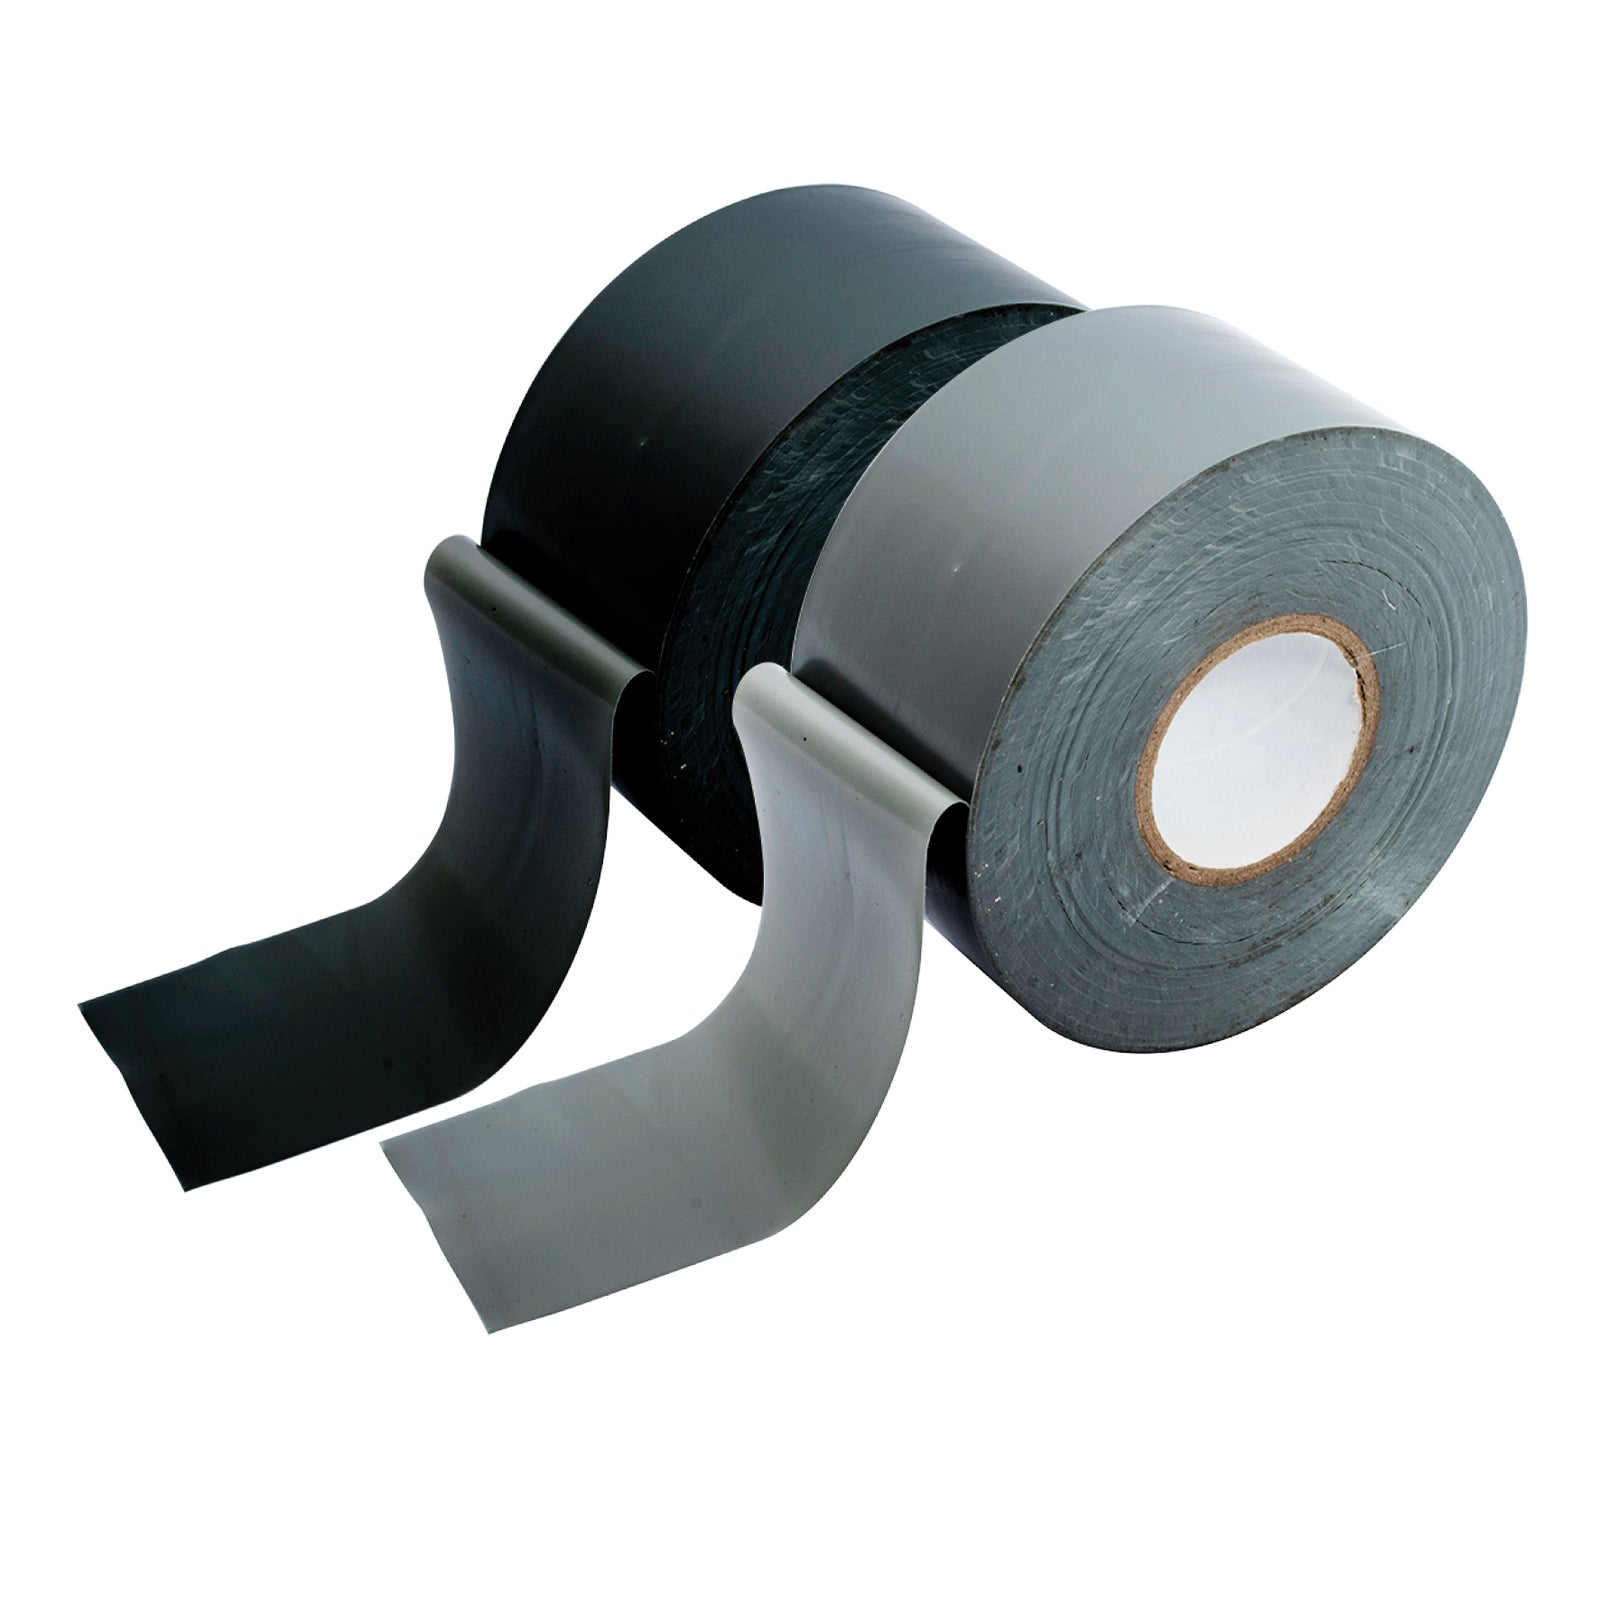 Handy Hardware® 2PCE Heavy Duty Duct Tape 50m x 48mm Silver and Black